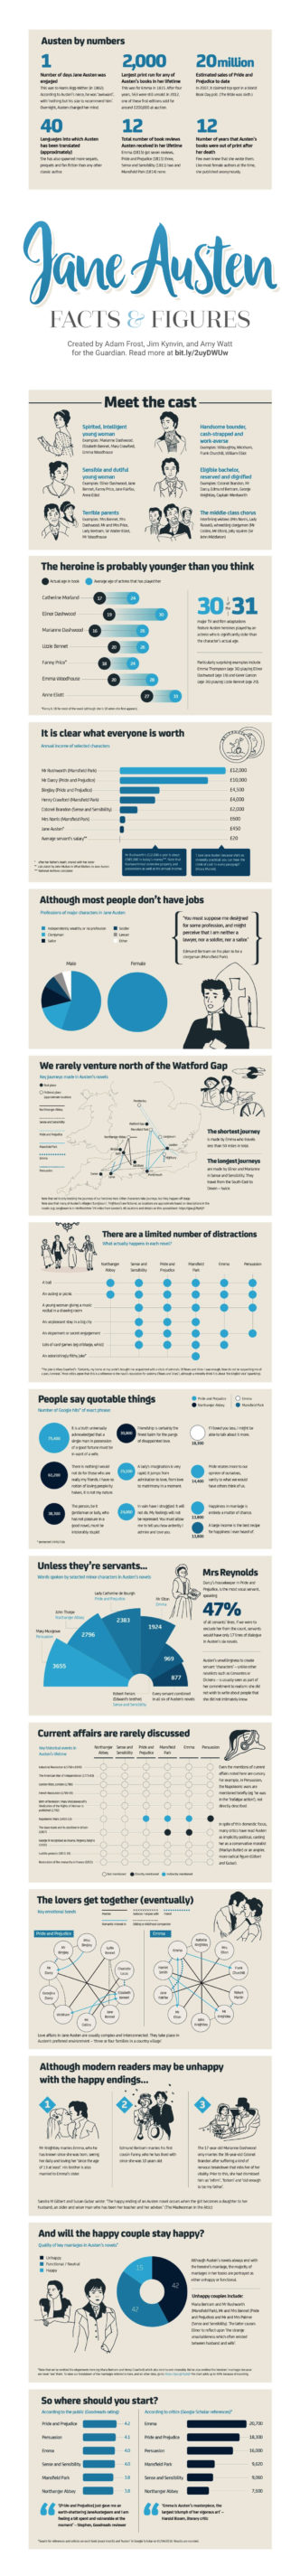 Jane Austen facts and figures #infographic